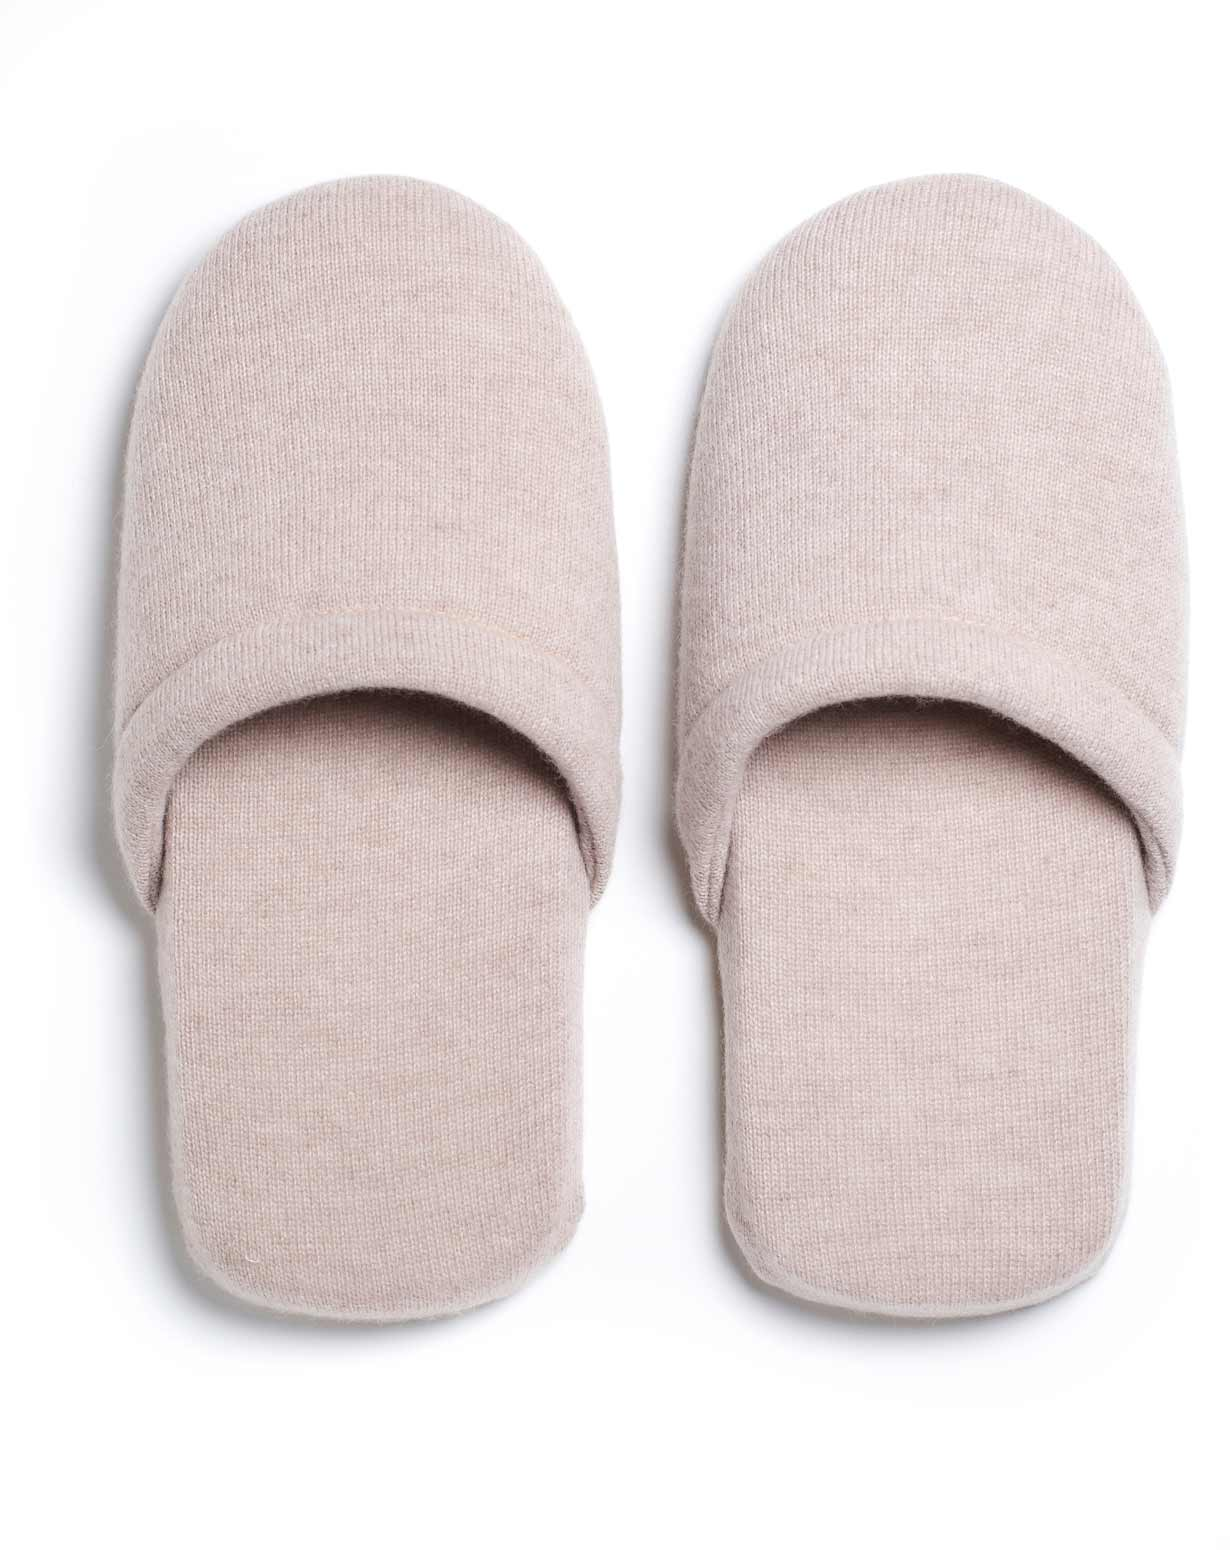 Unisex Pure Cashmere Slippers